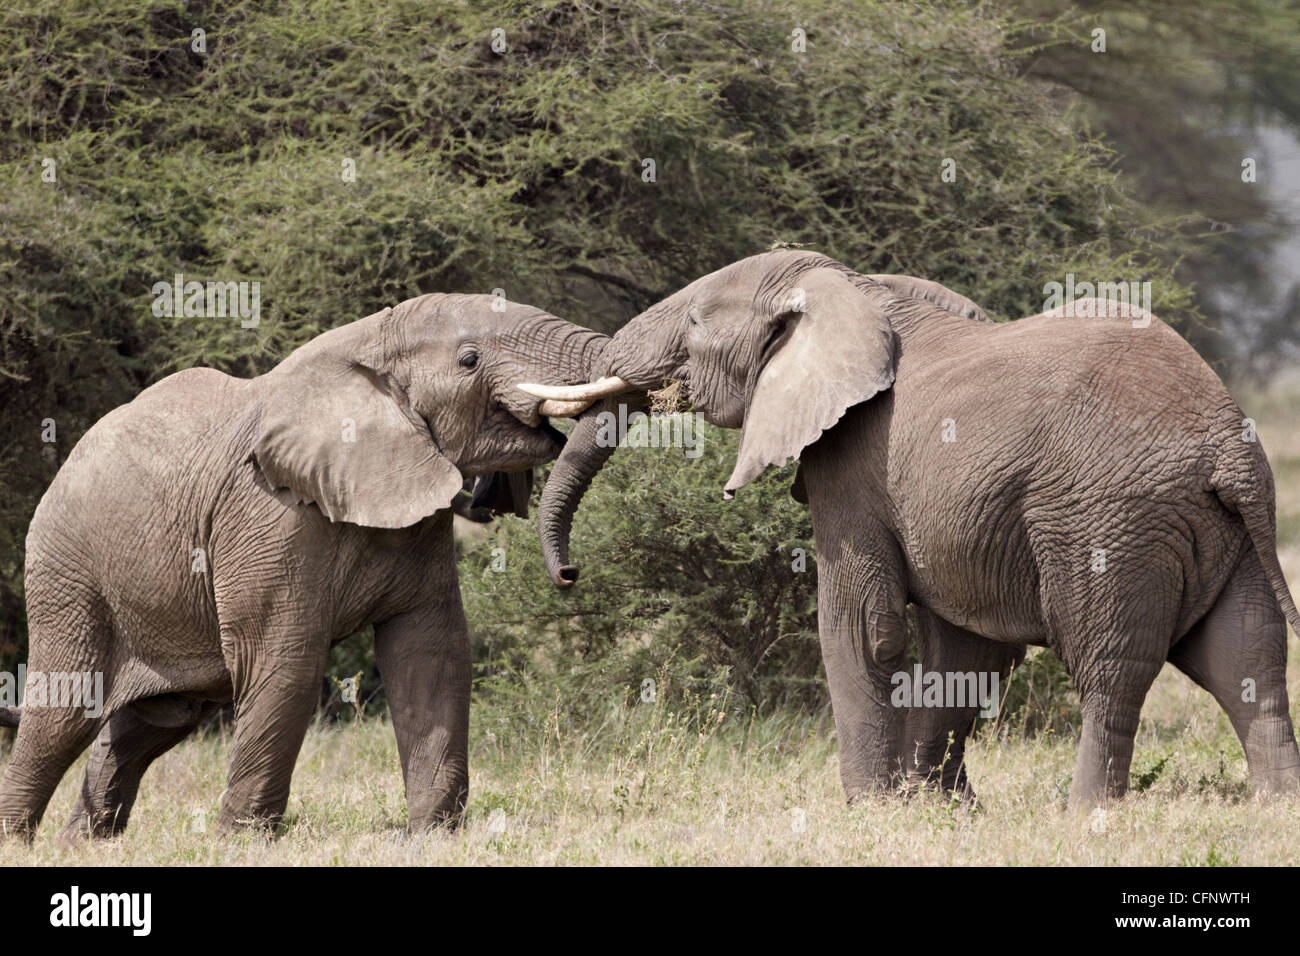 Two African elephant (Loxodonta africana) sparring, Serengeti National Park, Tanzania, East Africa, Africa - Stock Image